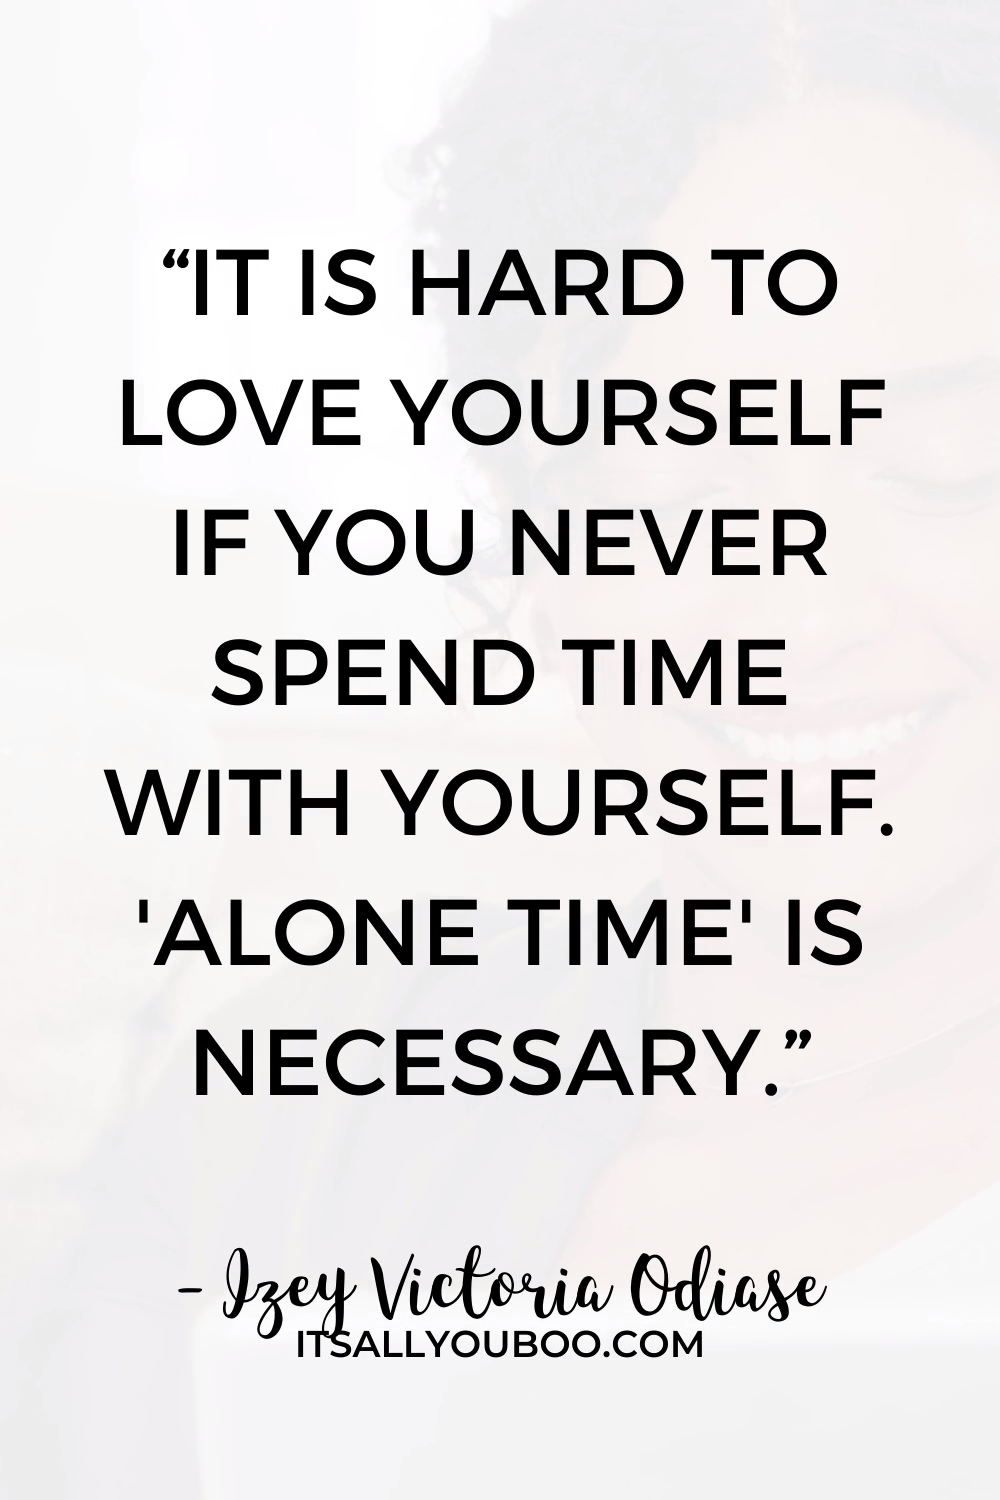 You've Got to Embrace Spending Time Alone